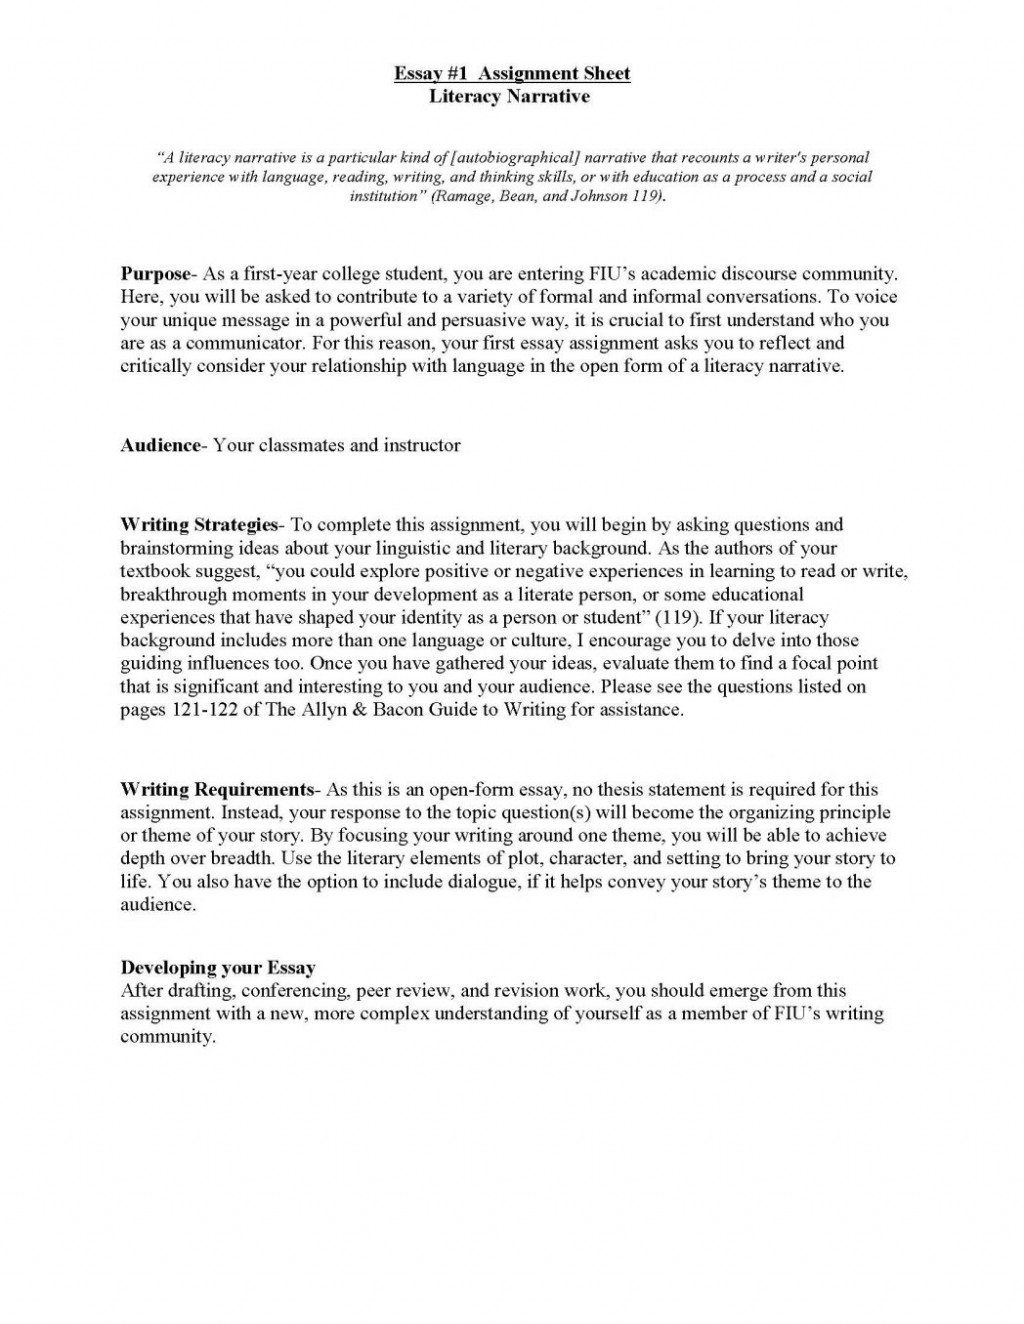 010 Thesis Statement For Narrative Essayes Of Outline Good Descriptive Topics Literacy Unit Assignment Spring 2012 P Personale 1048x1356 Staggering Essay The A Should Be Created During Brainly Large